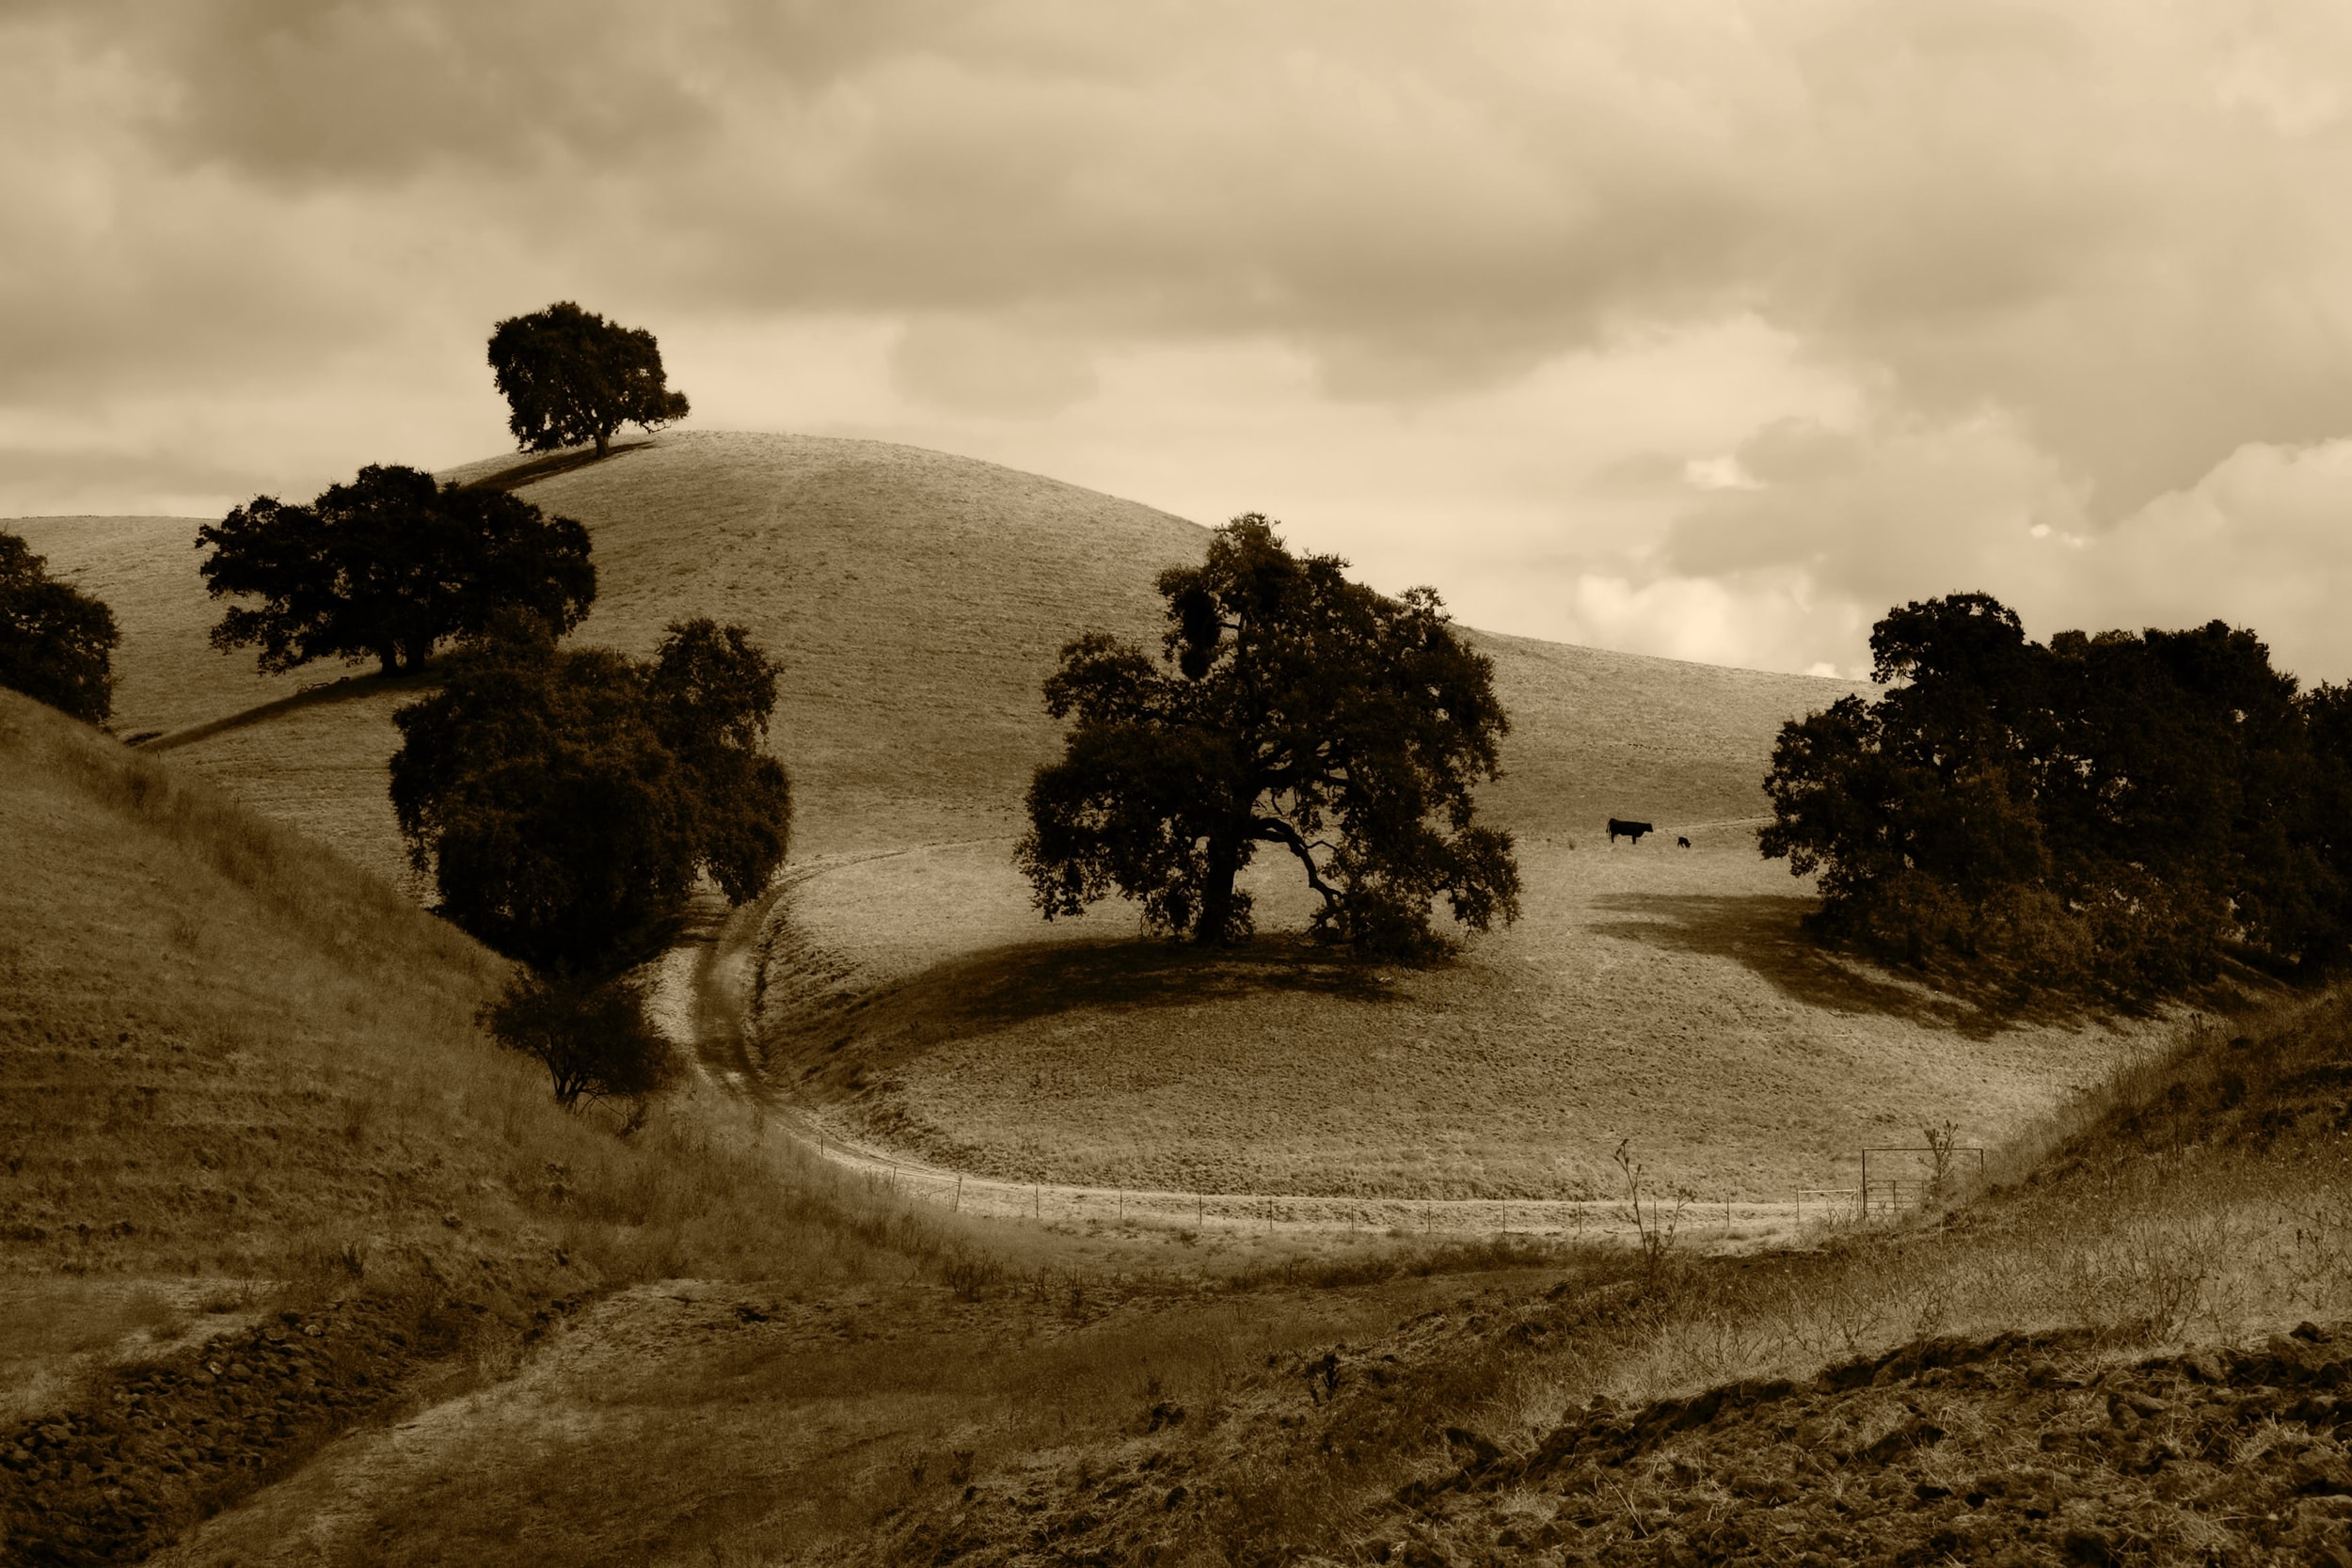 A black-and-white shot of a hilly rural area with cows grazing in the distance